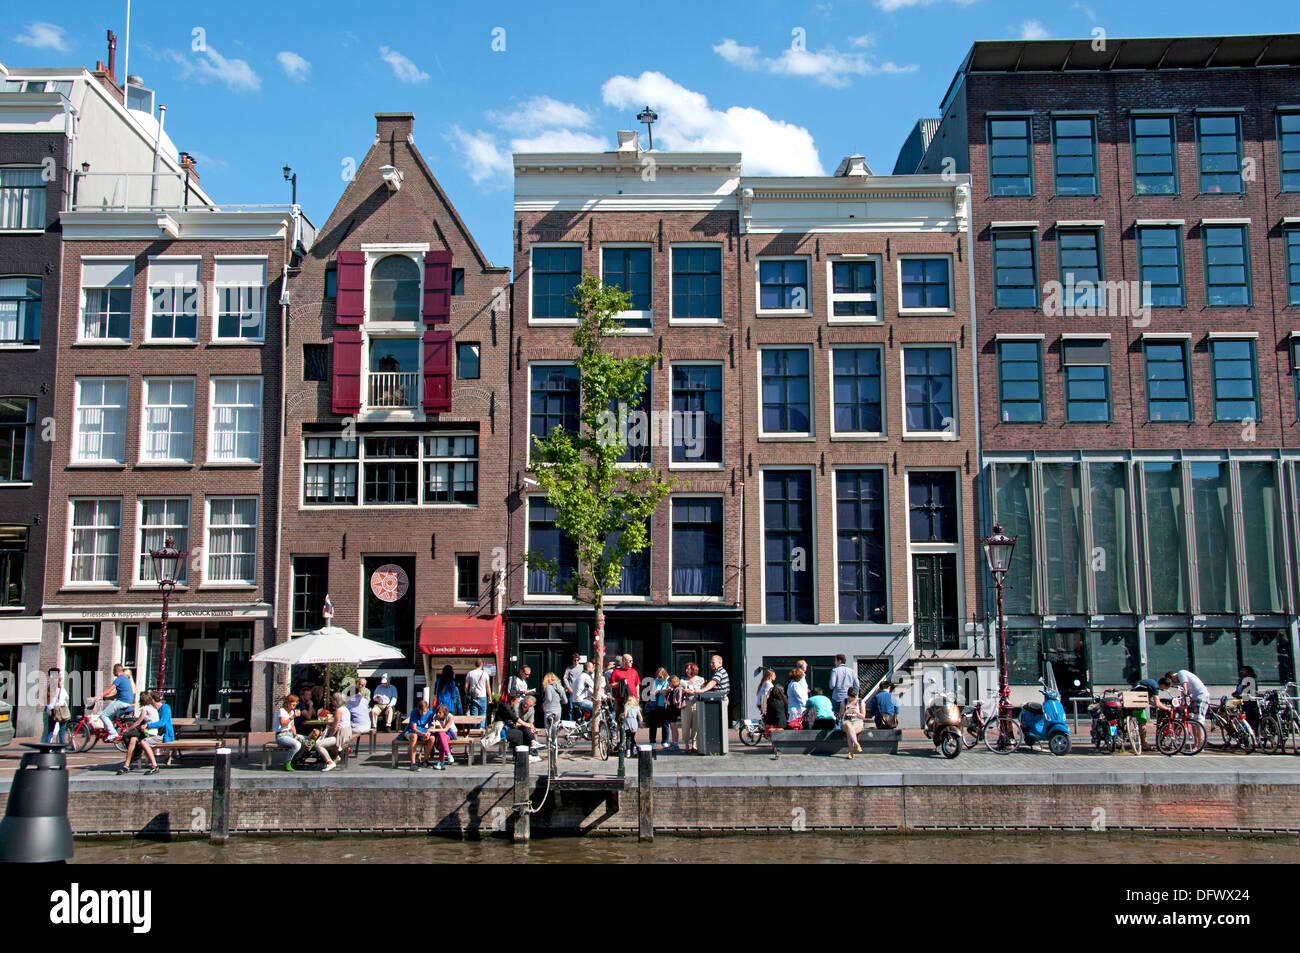 The Anne Frank House Prinsengracht  263-265 canal in Amsterdam the Netherlands (  museum dedicated to Jewish wartime diarist ) - Stock Image